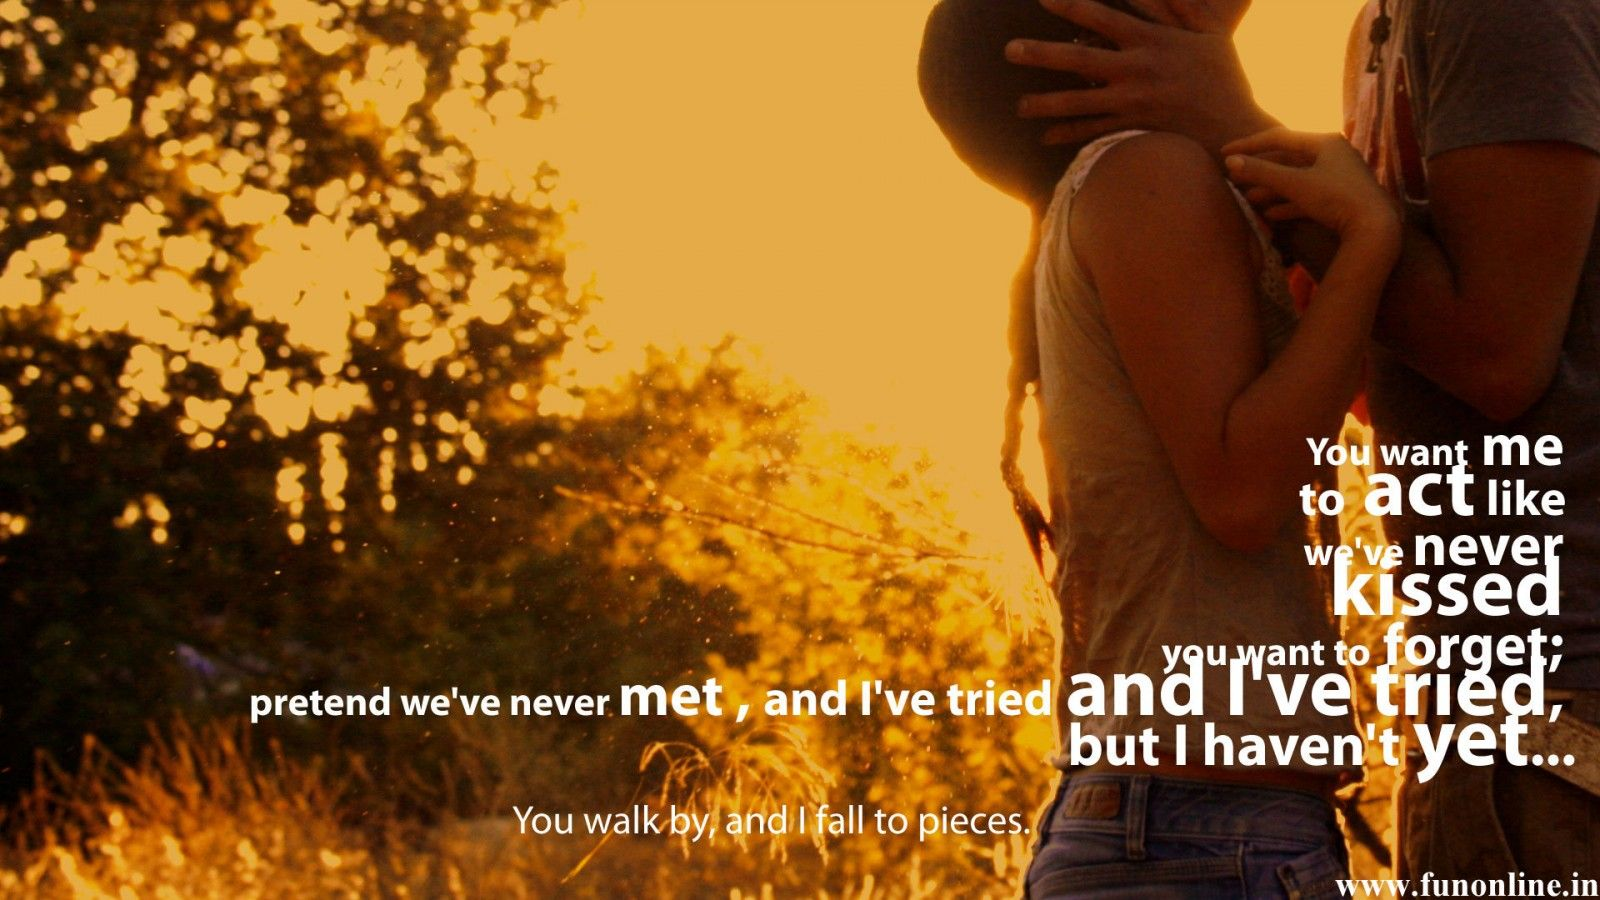 Love Quotes For Couples Quotes For Him On New Years Love Qoutes For Him Wallpapers Love